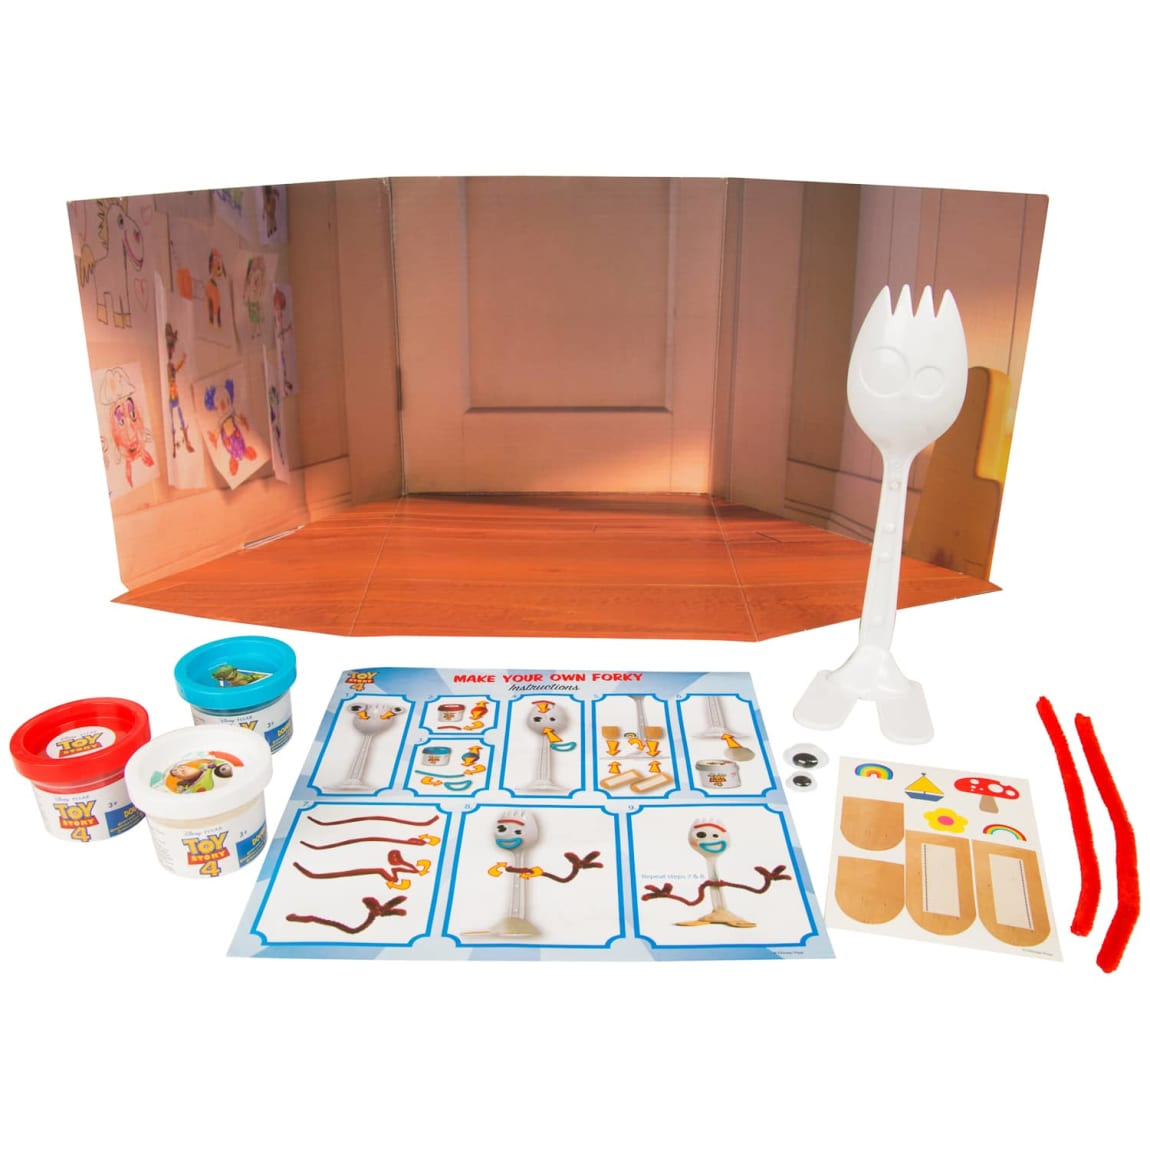 Toy Story 4 Make-Your-Own Forky Craft Set